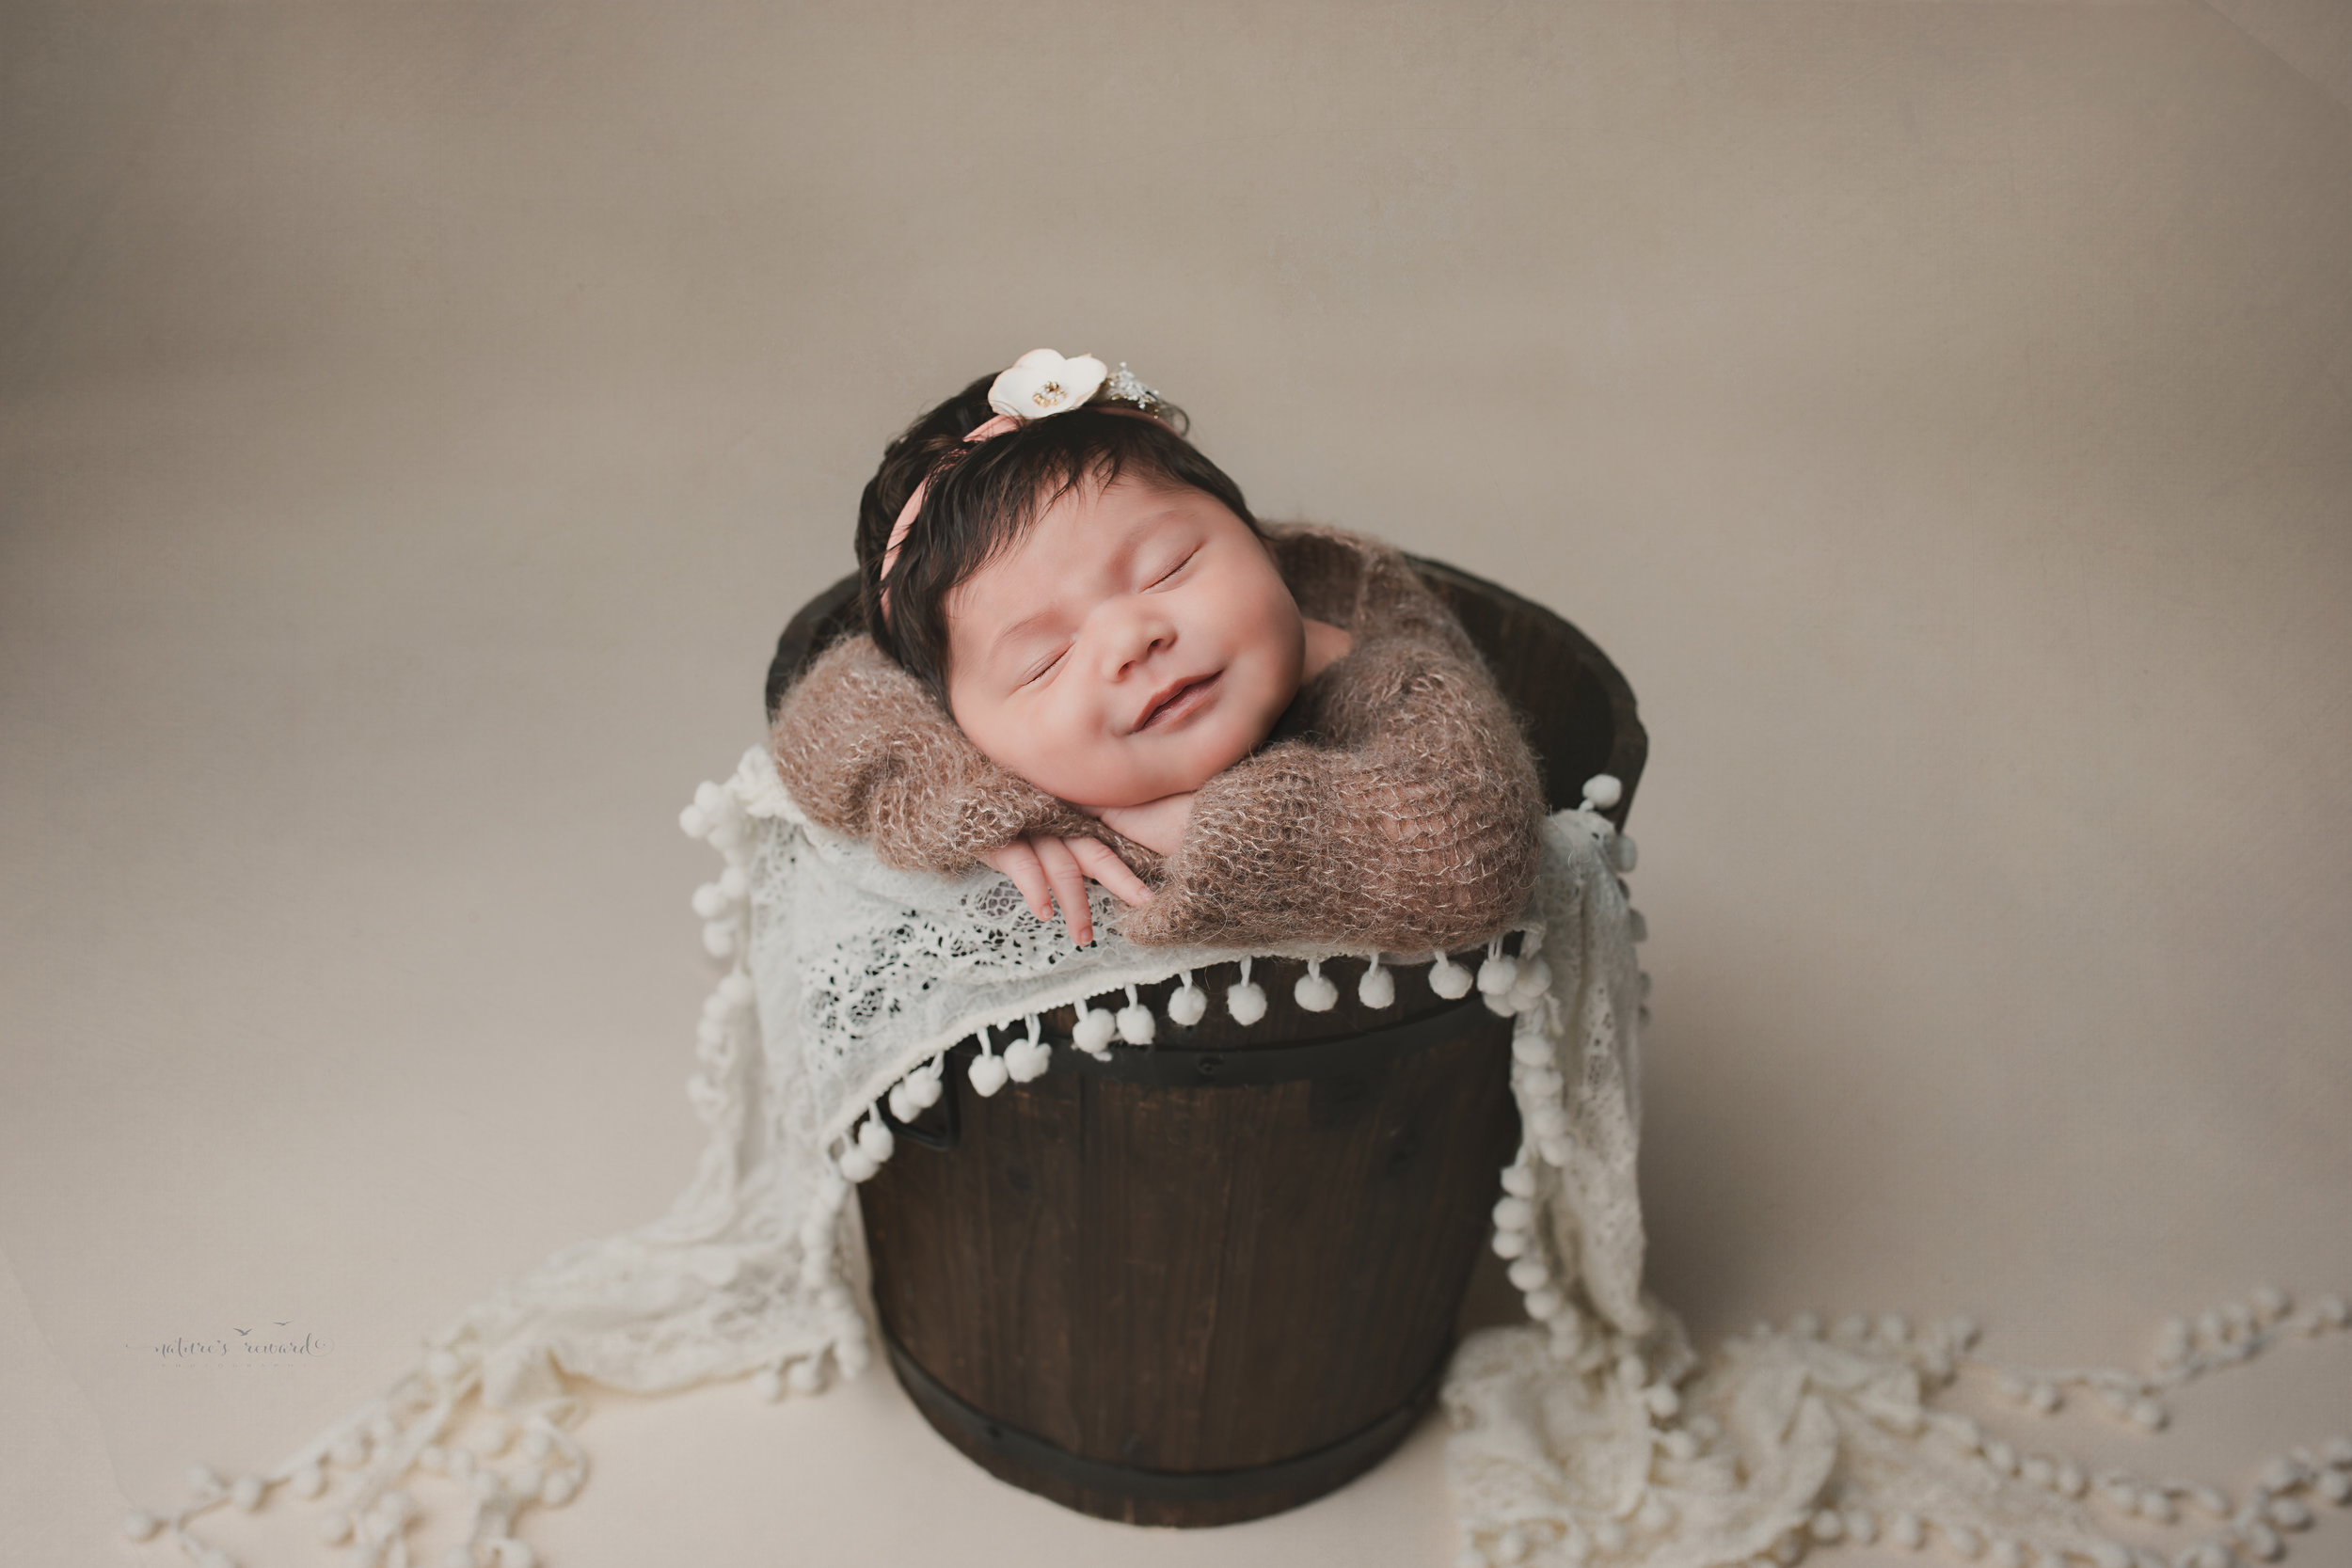 Newborn baby girl in a bucket on tan background, a portrait by Nature's Reward Photography